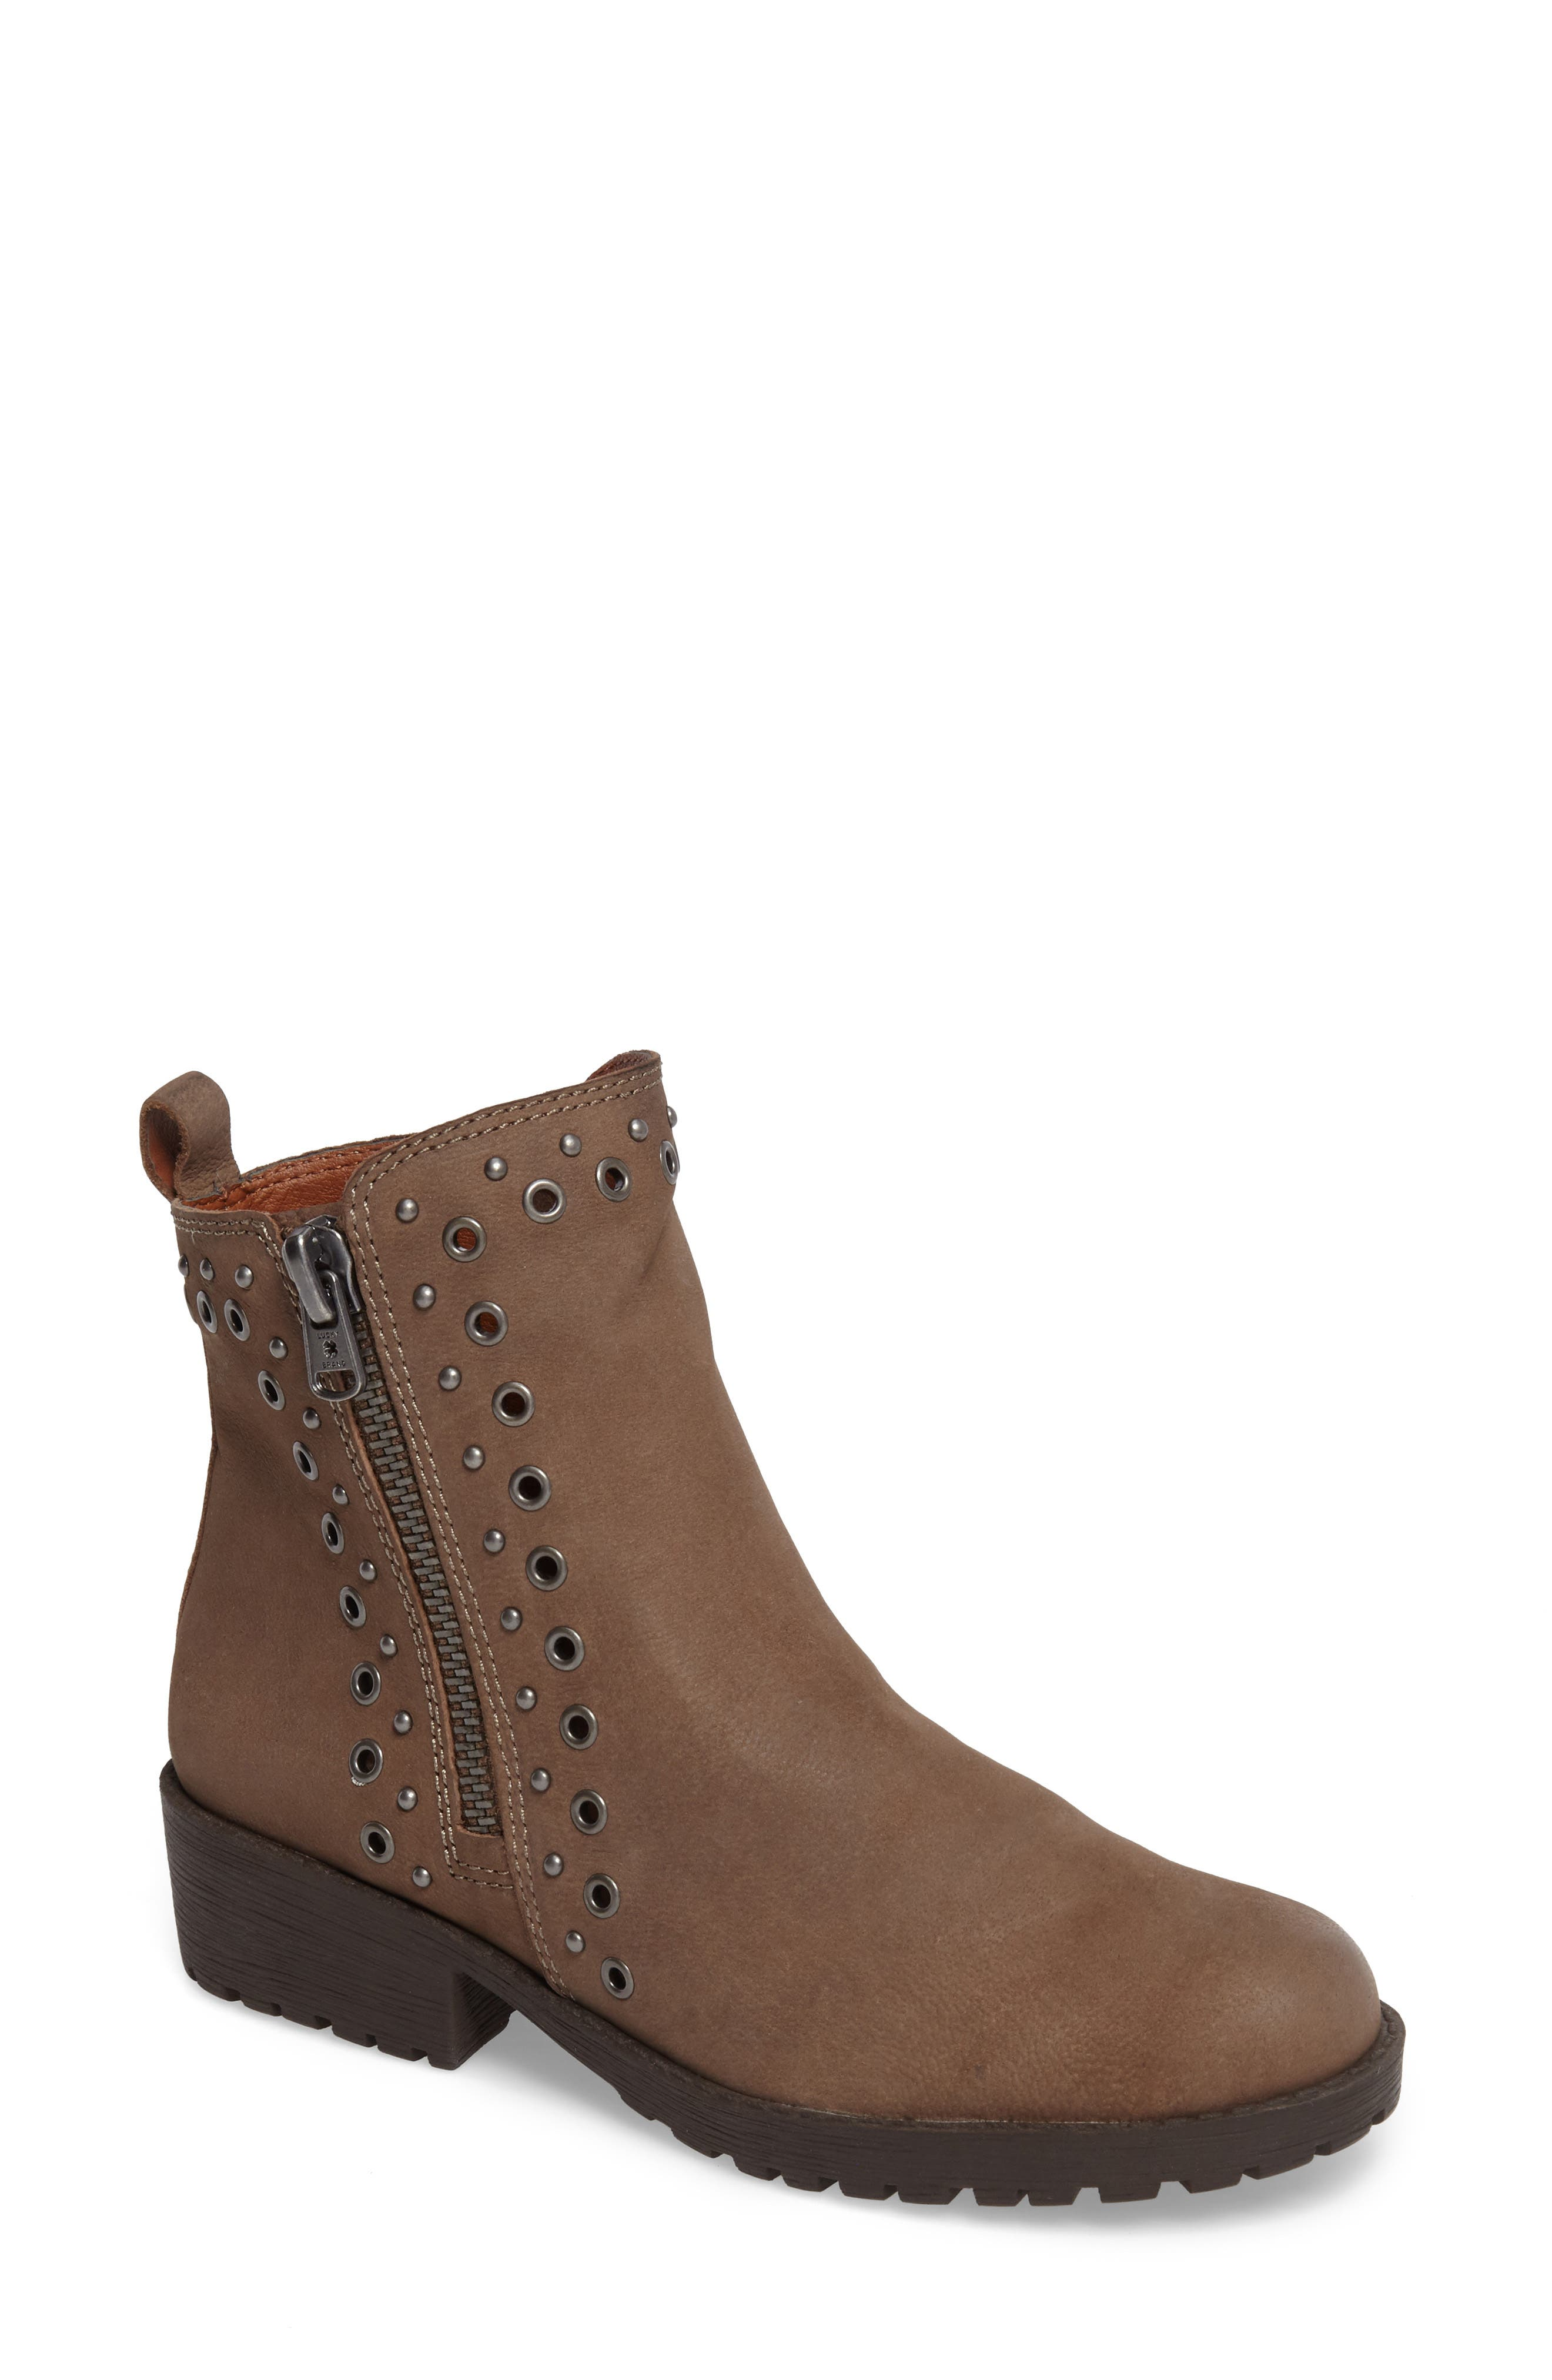 Hannie Embellished Bootie,                             Main thumbnail 1, color,                             Brindle Leather